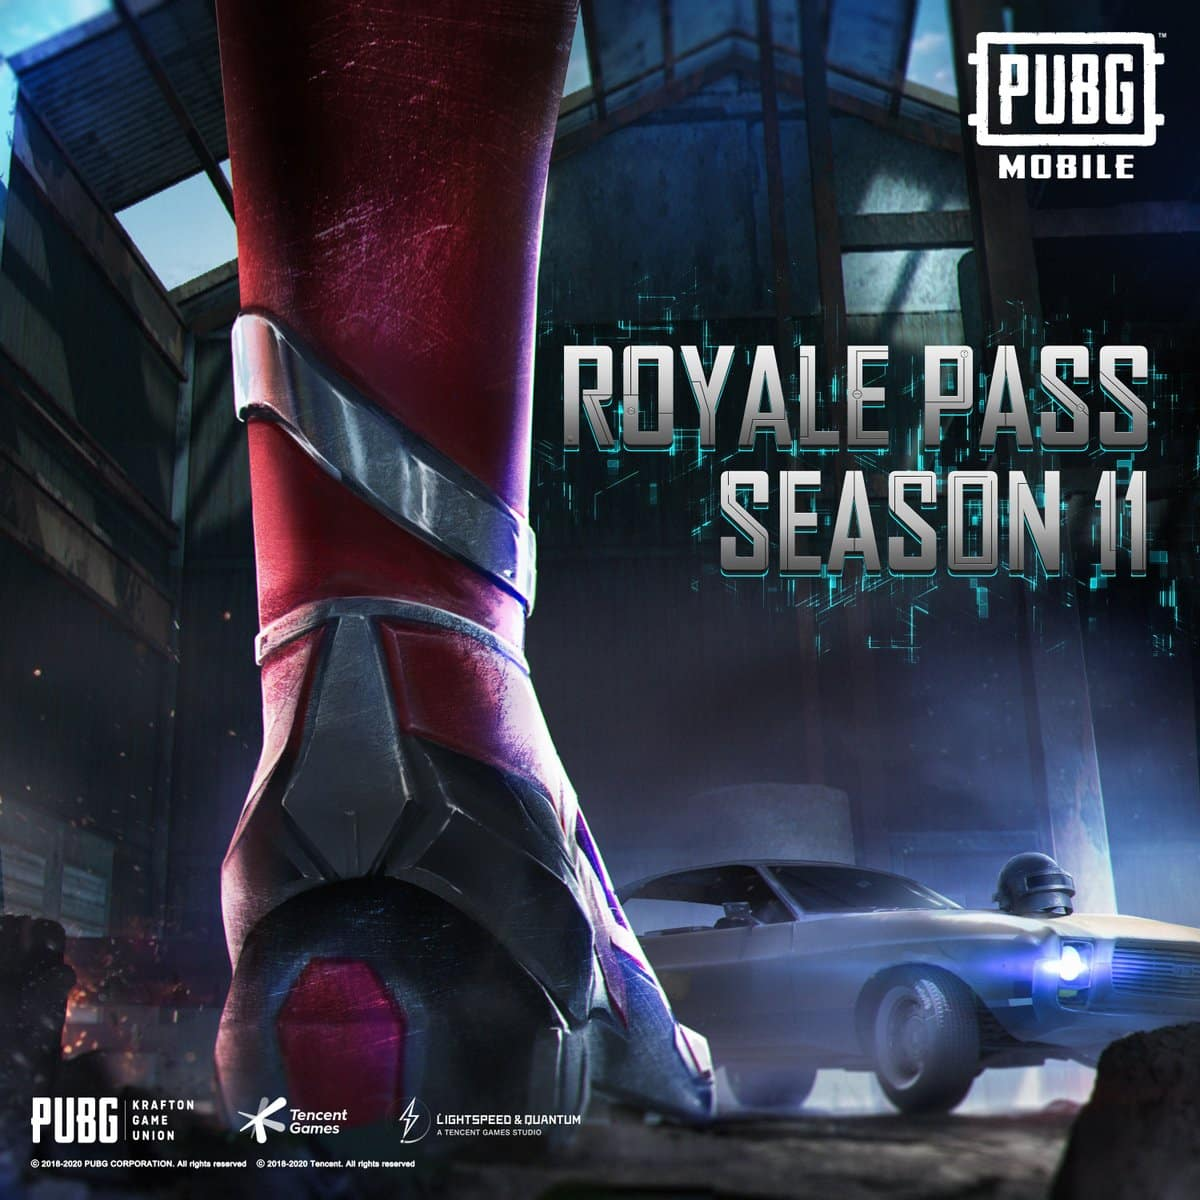 PUBG Mobile Season 11 TO Begin on January 10